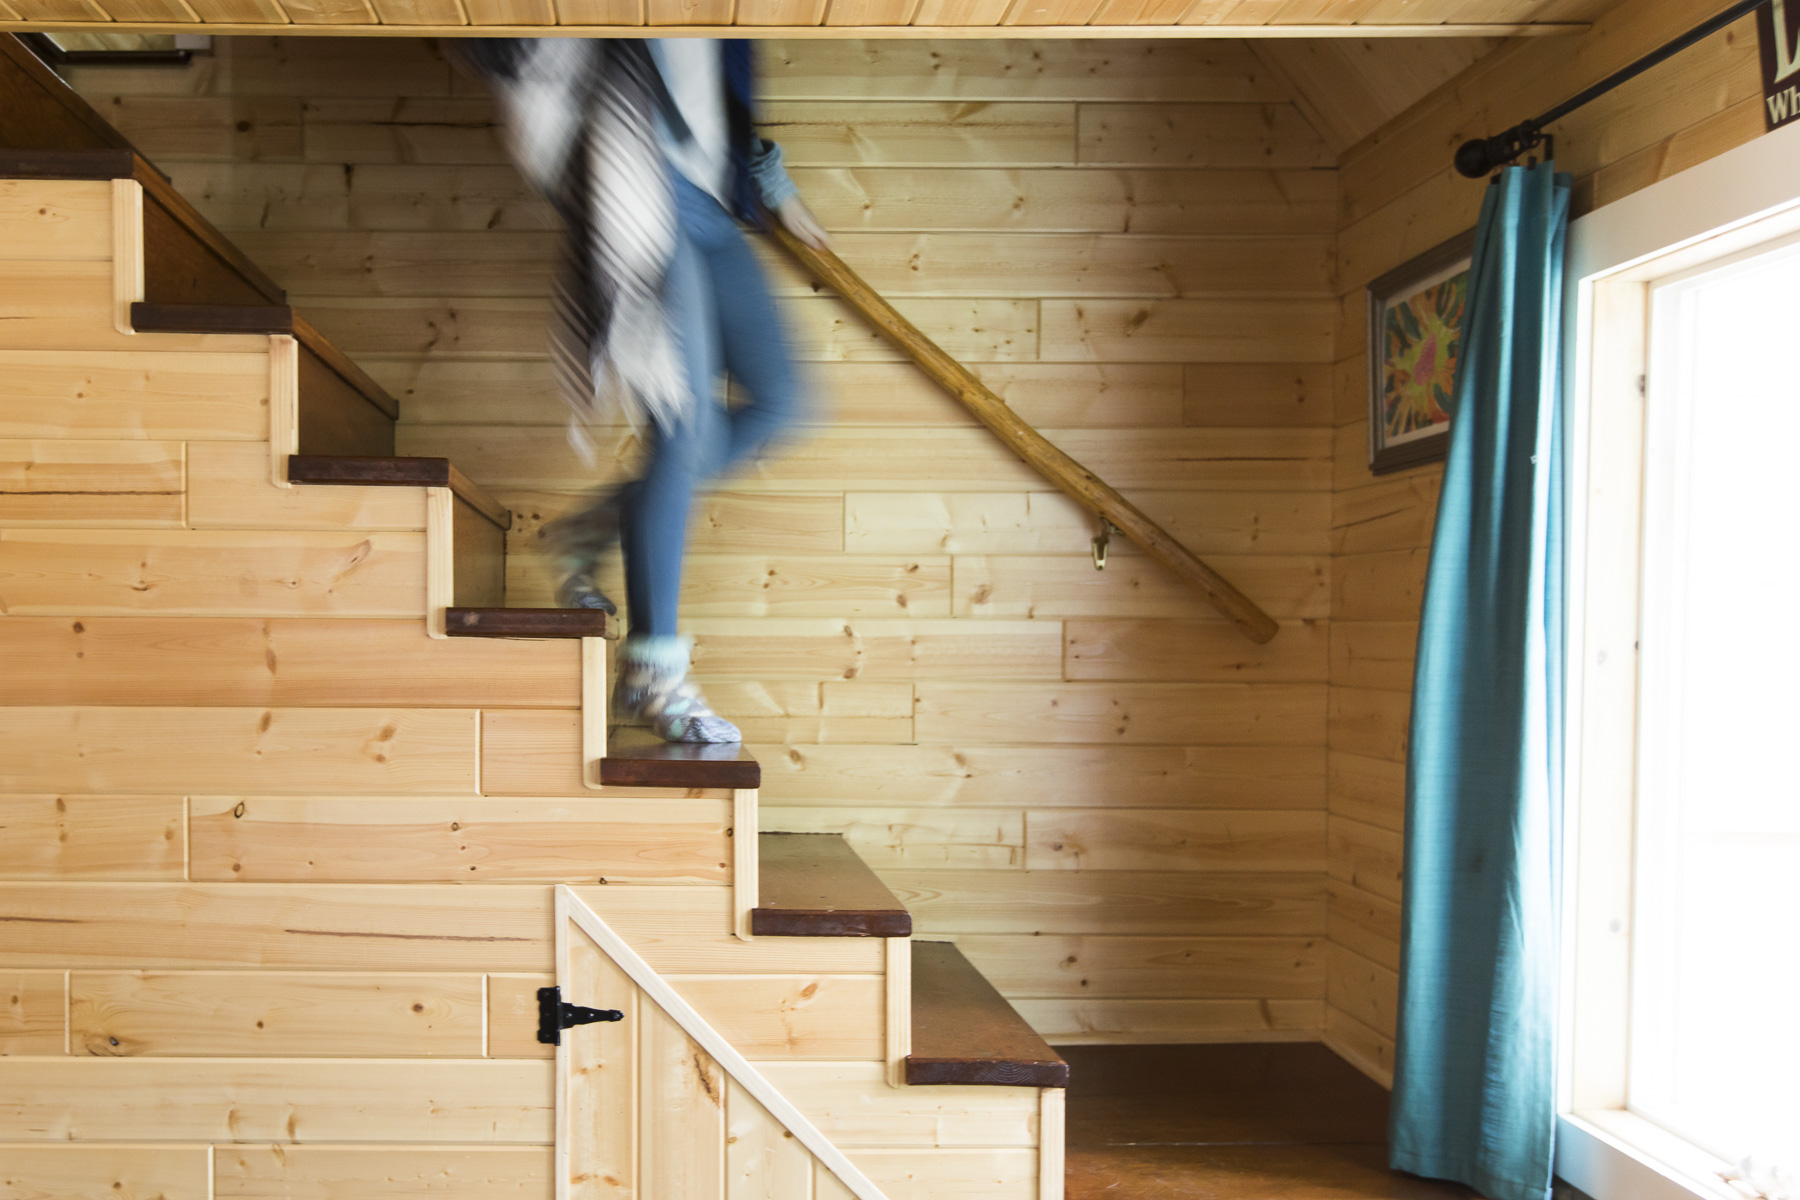 Girl walking down stairs at cabin